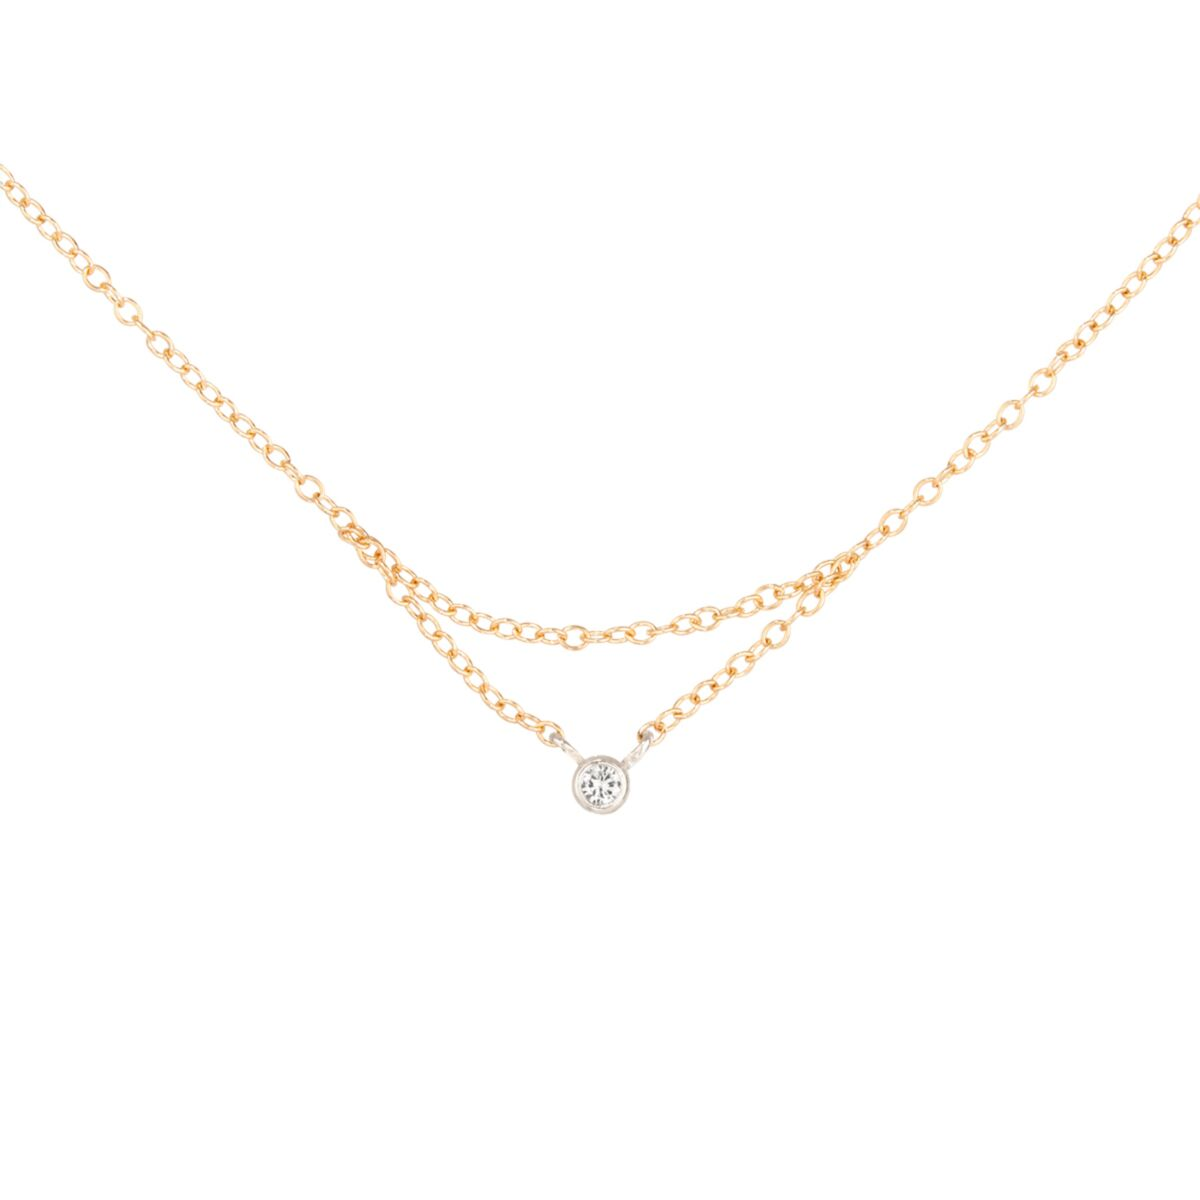 Chained to My Heart Necklace, Yellow Gold image